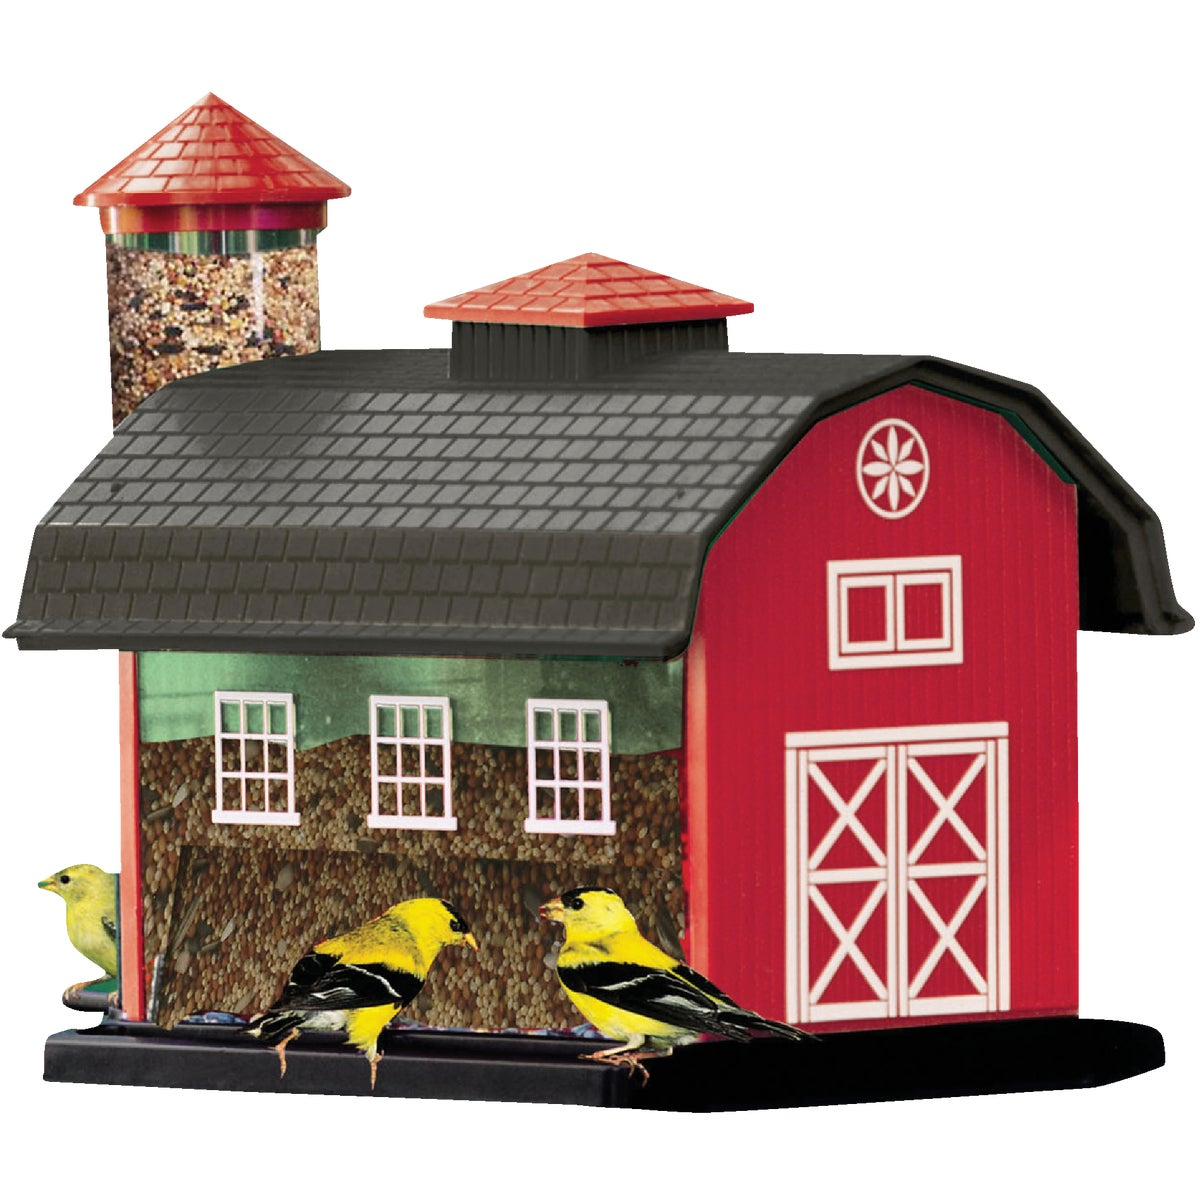 RED BARN FEEDER - 6290 by Kay Home Products